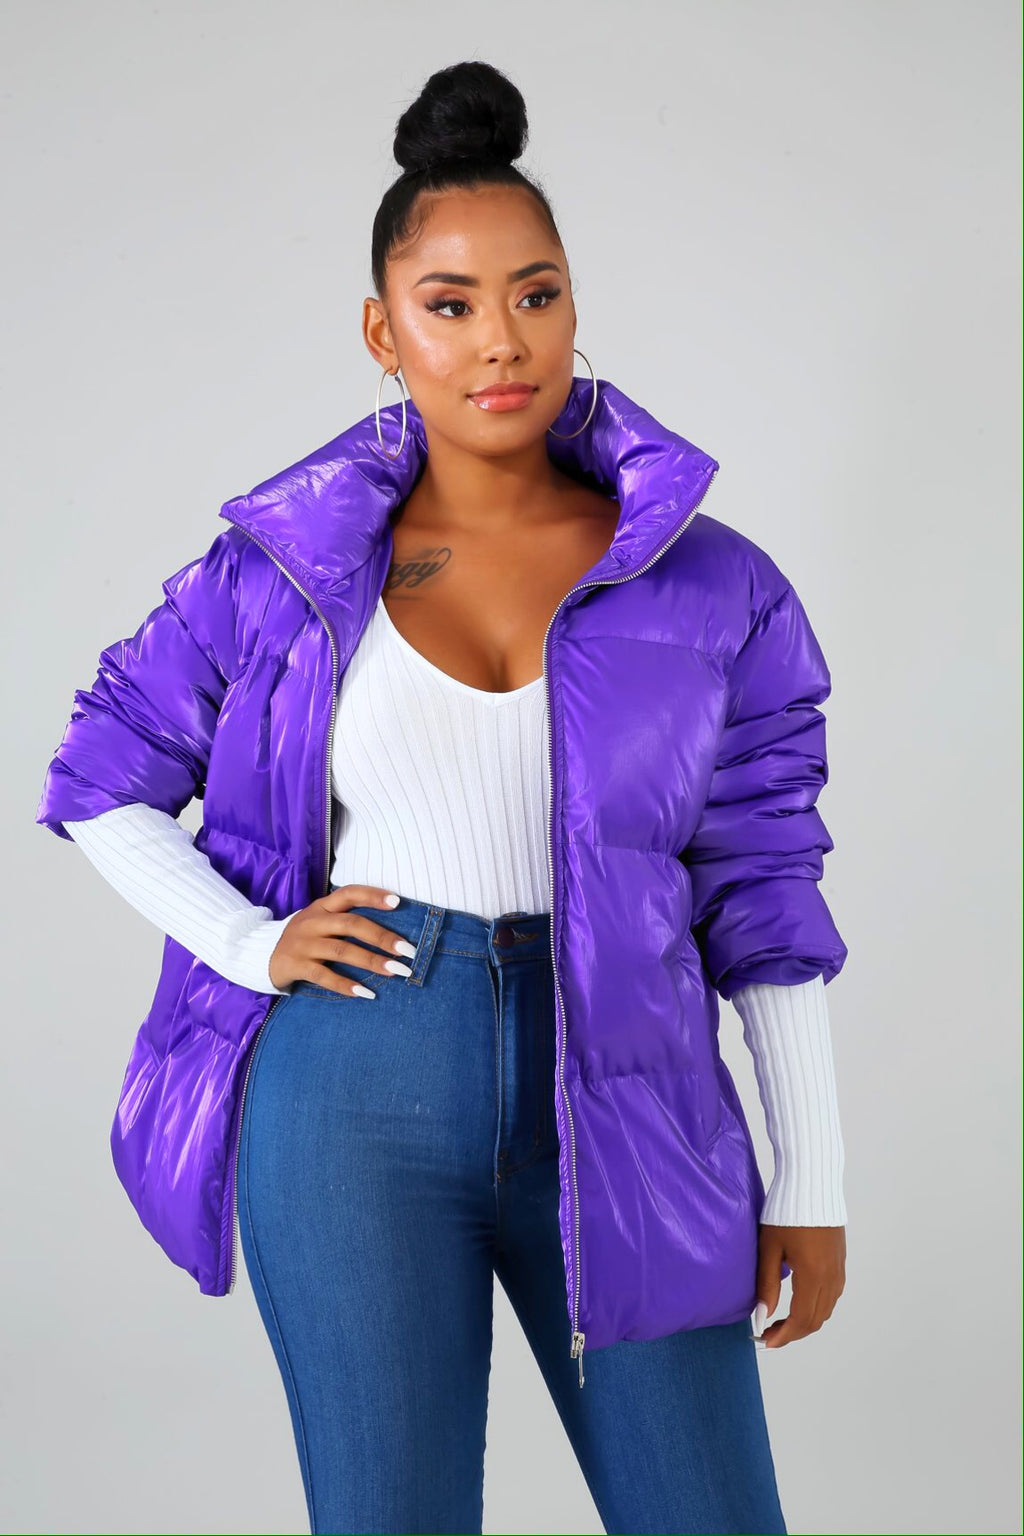 Fly Girl Purple Bomber Jacket